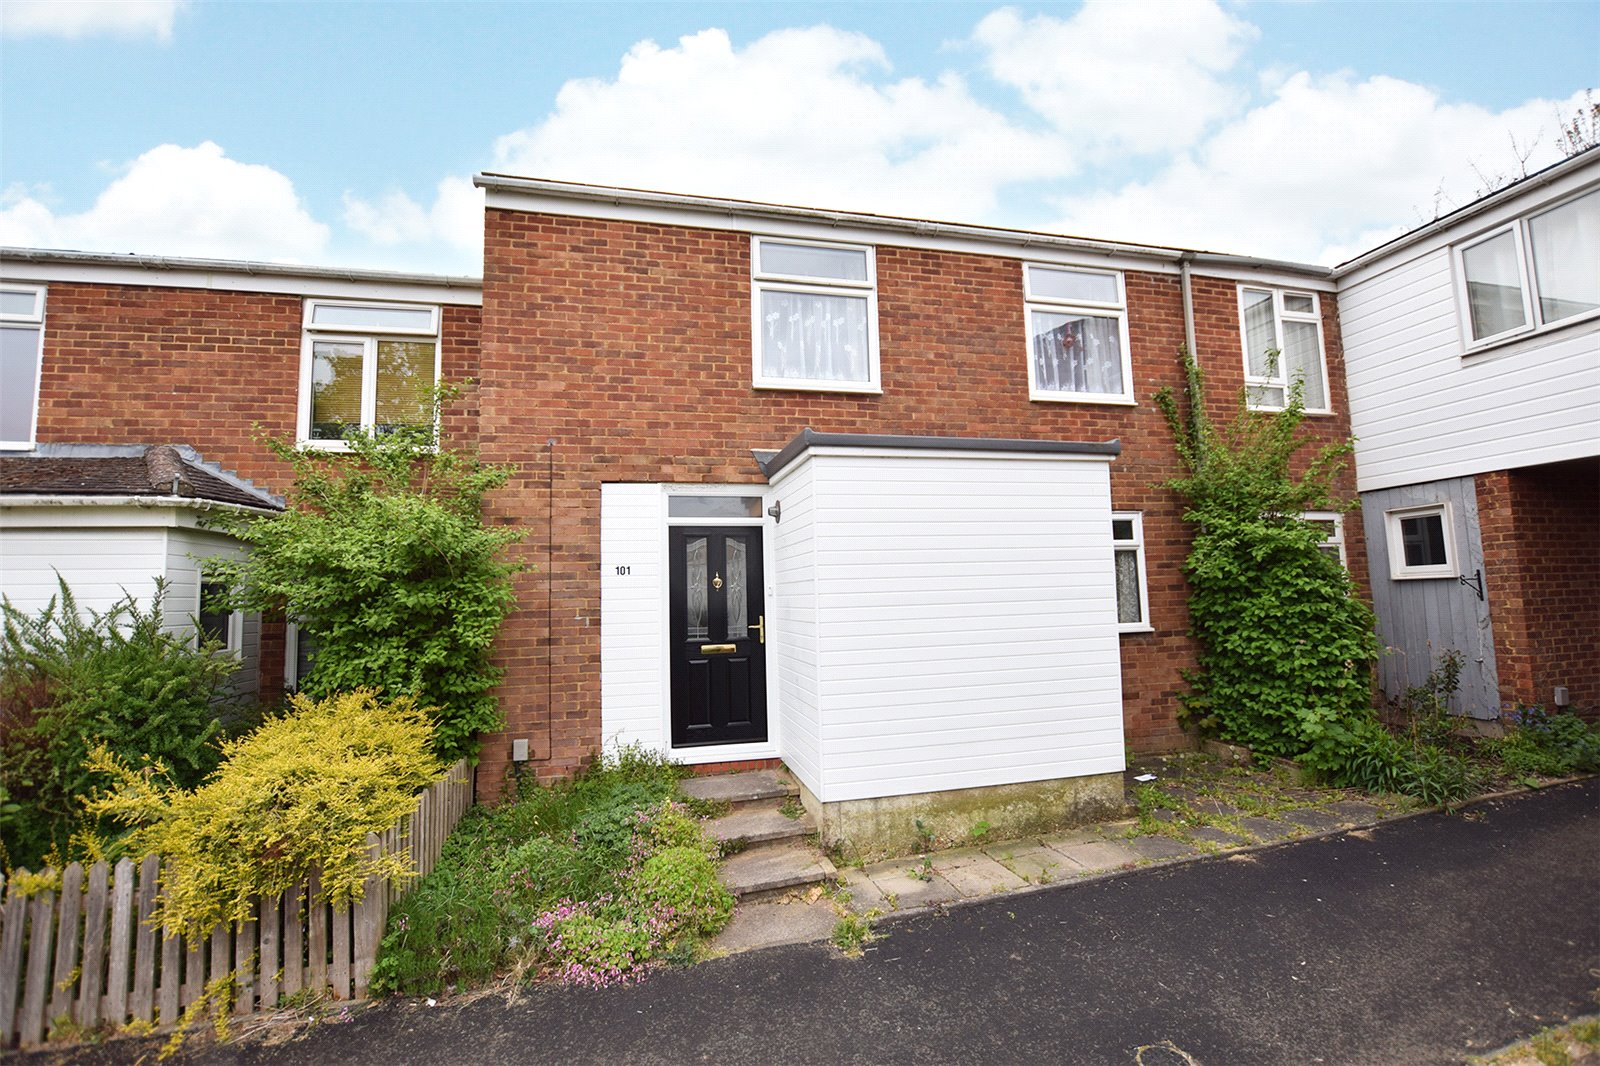 3 Bedrooms Terraced House for sale in Holbeck, Bracknell, Berkshire, RG12